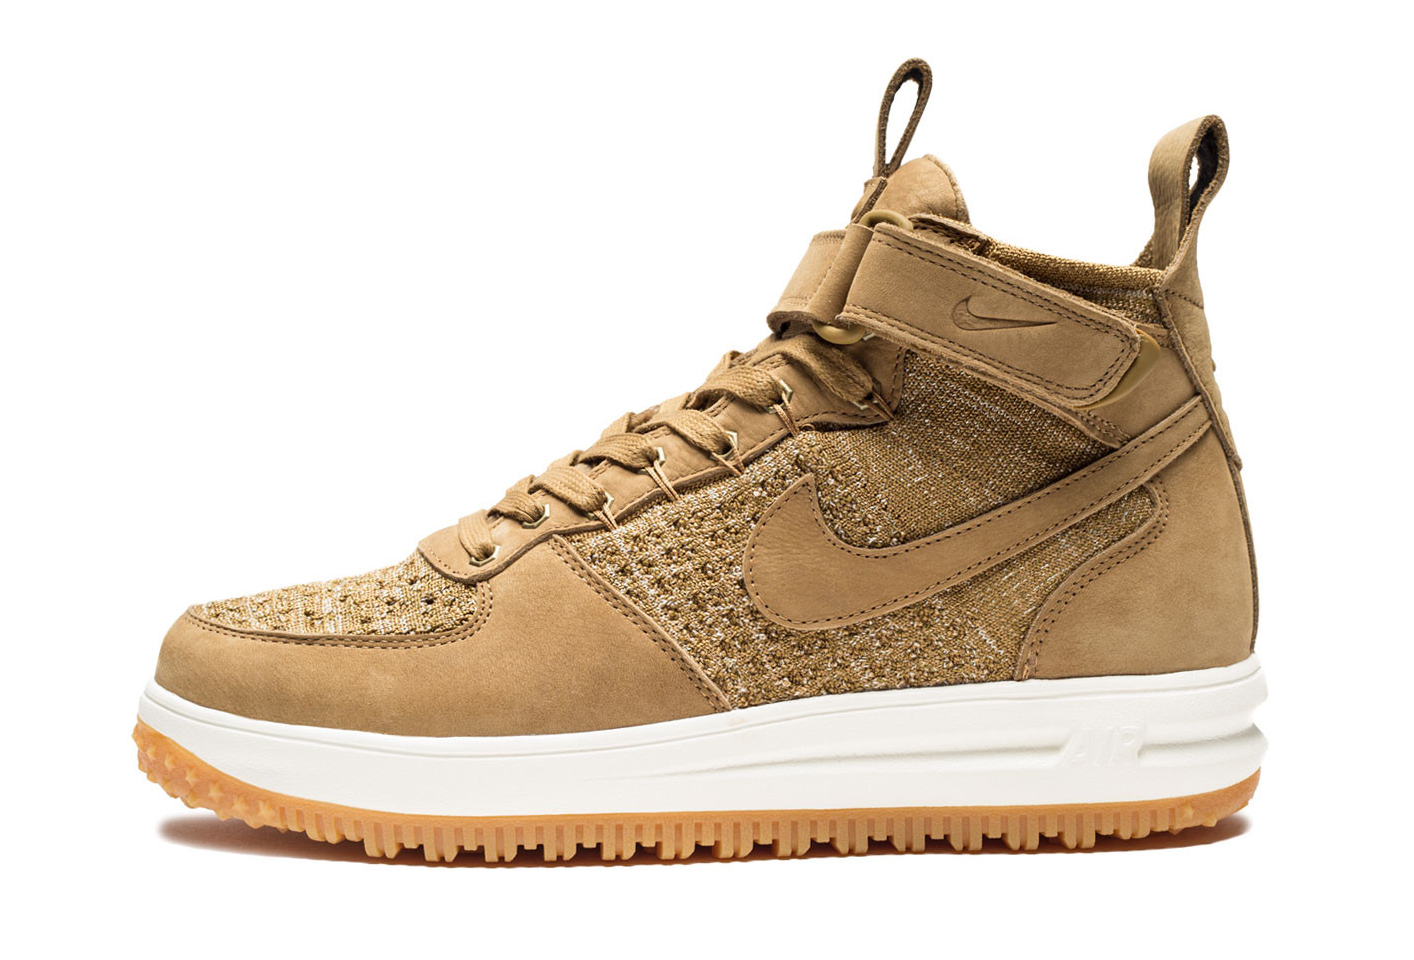 BootSole Lunar Force 1 Collector Flyknit Nike Wheat bfy7g6